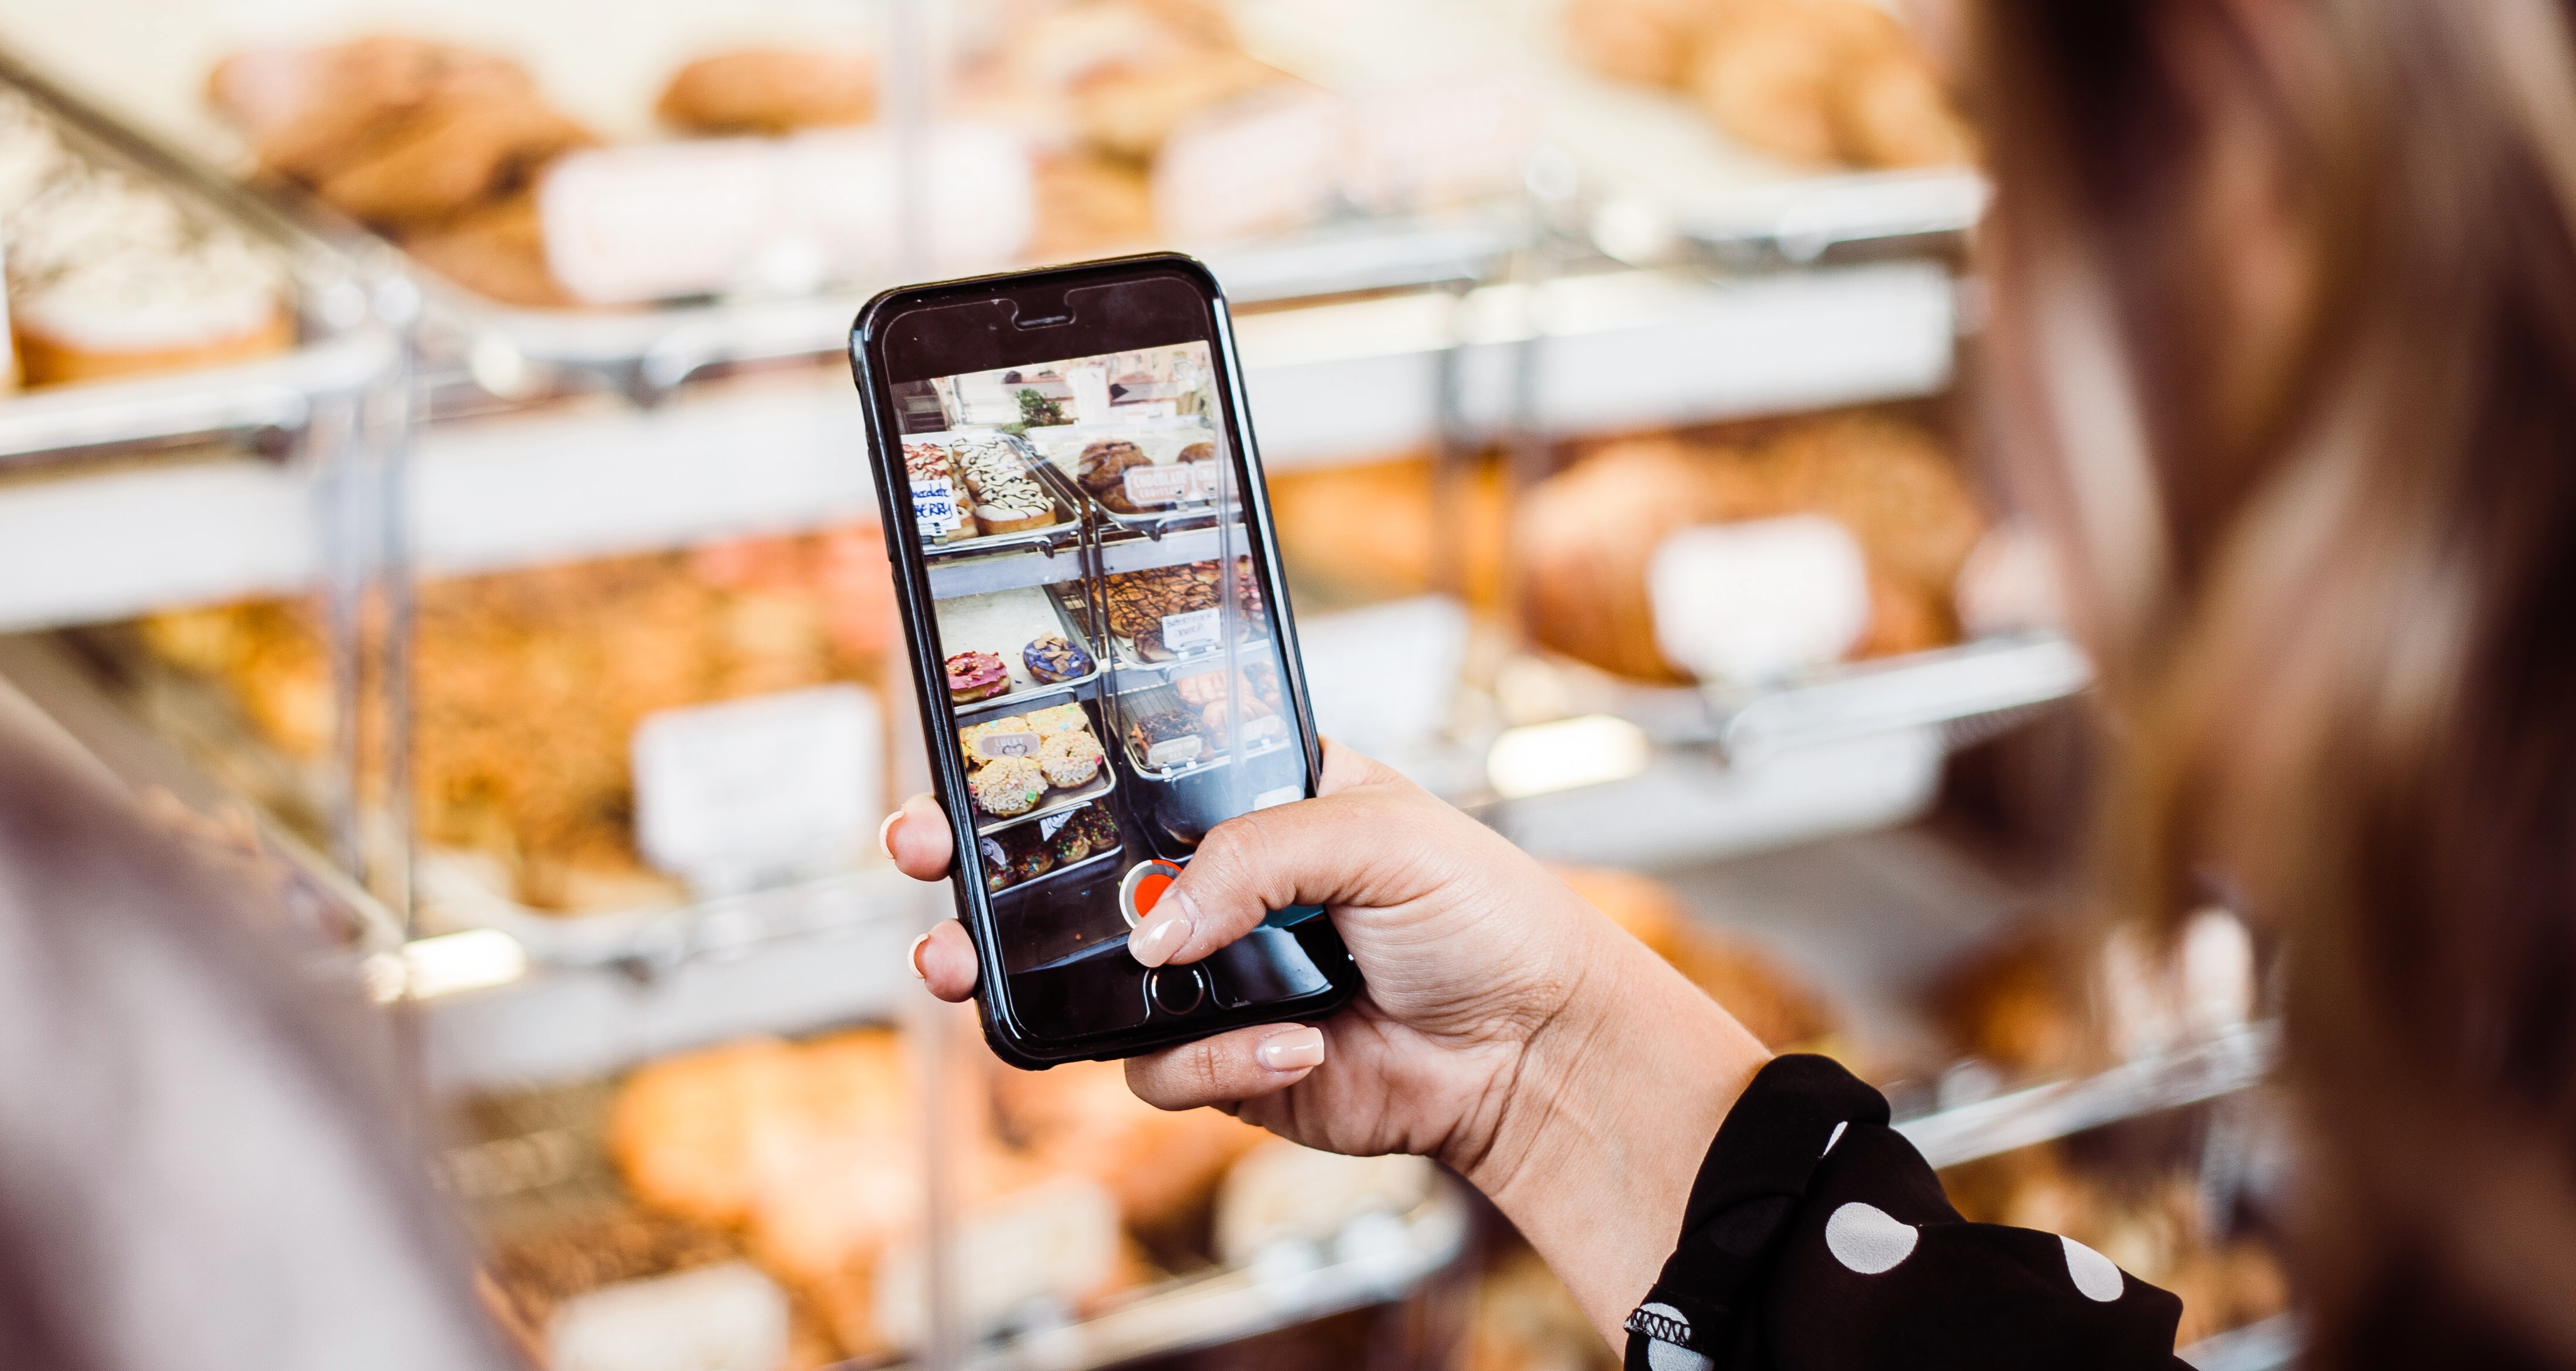 A lady taking an image of cakes and pastries, this image is user-generated content used to improve online reputation